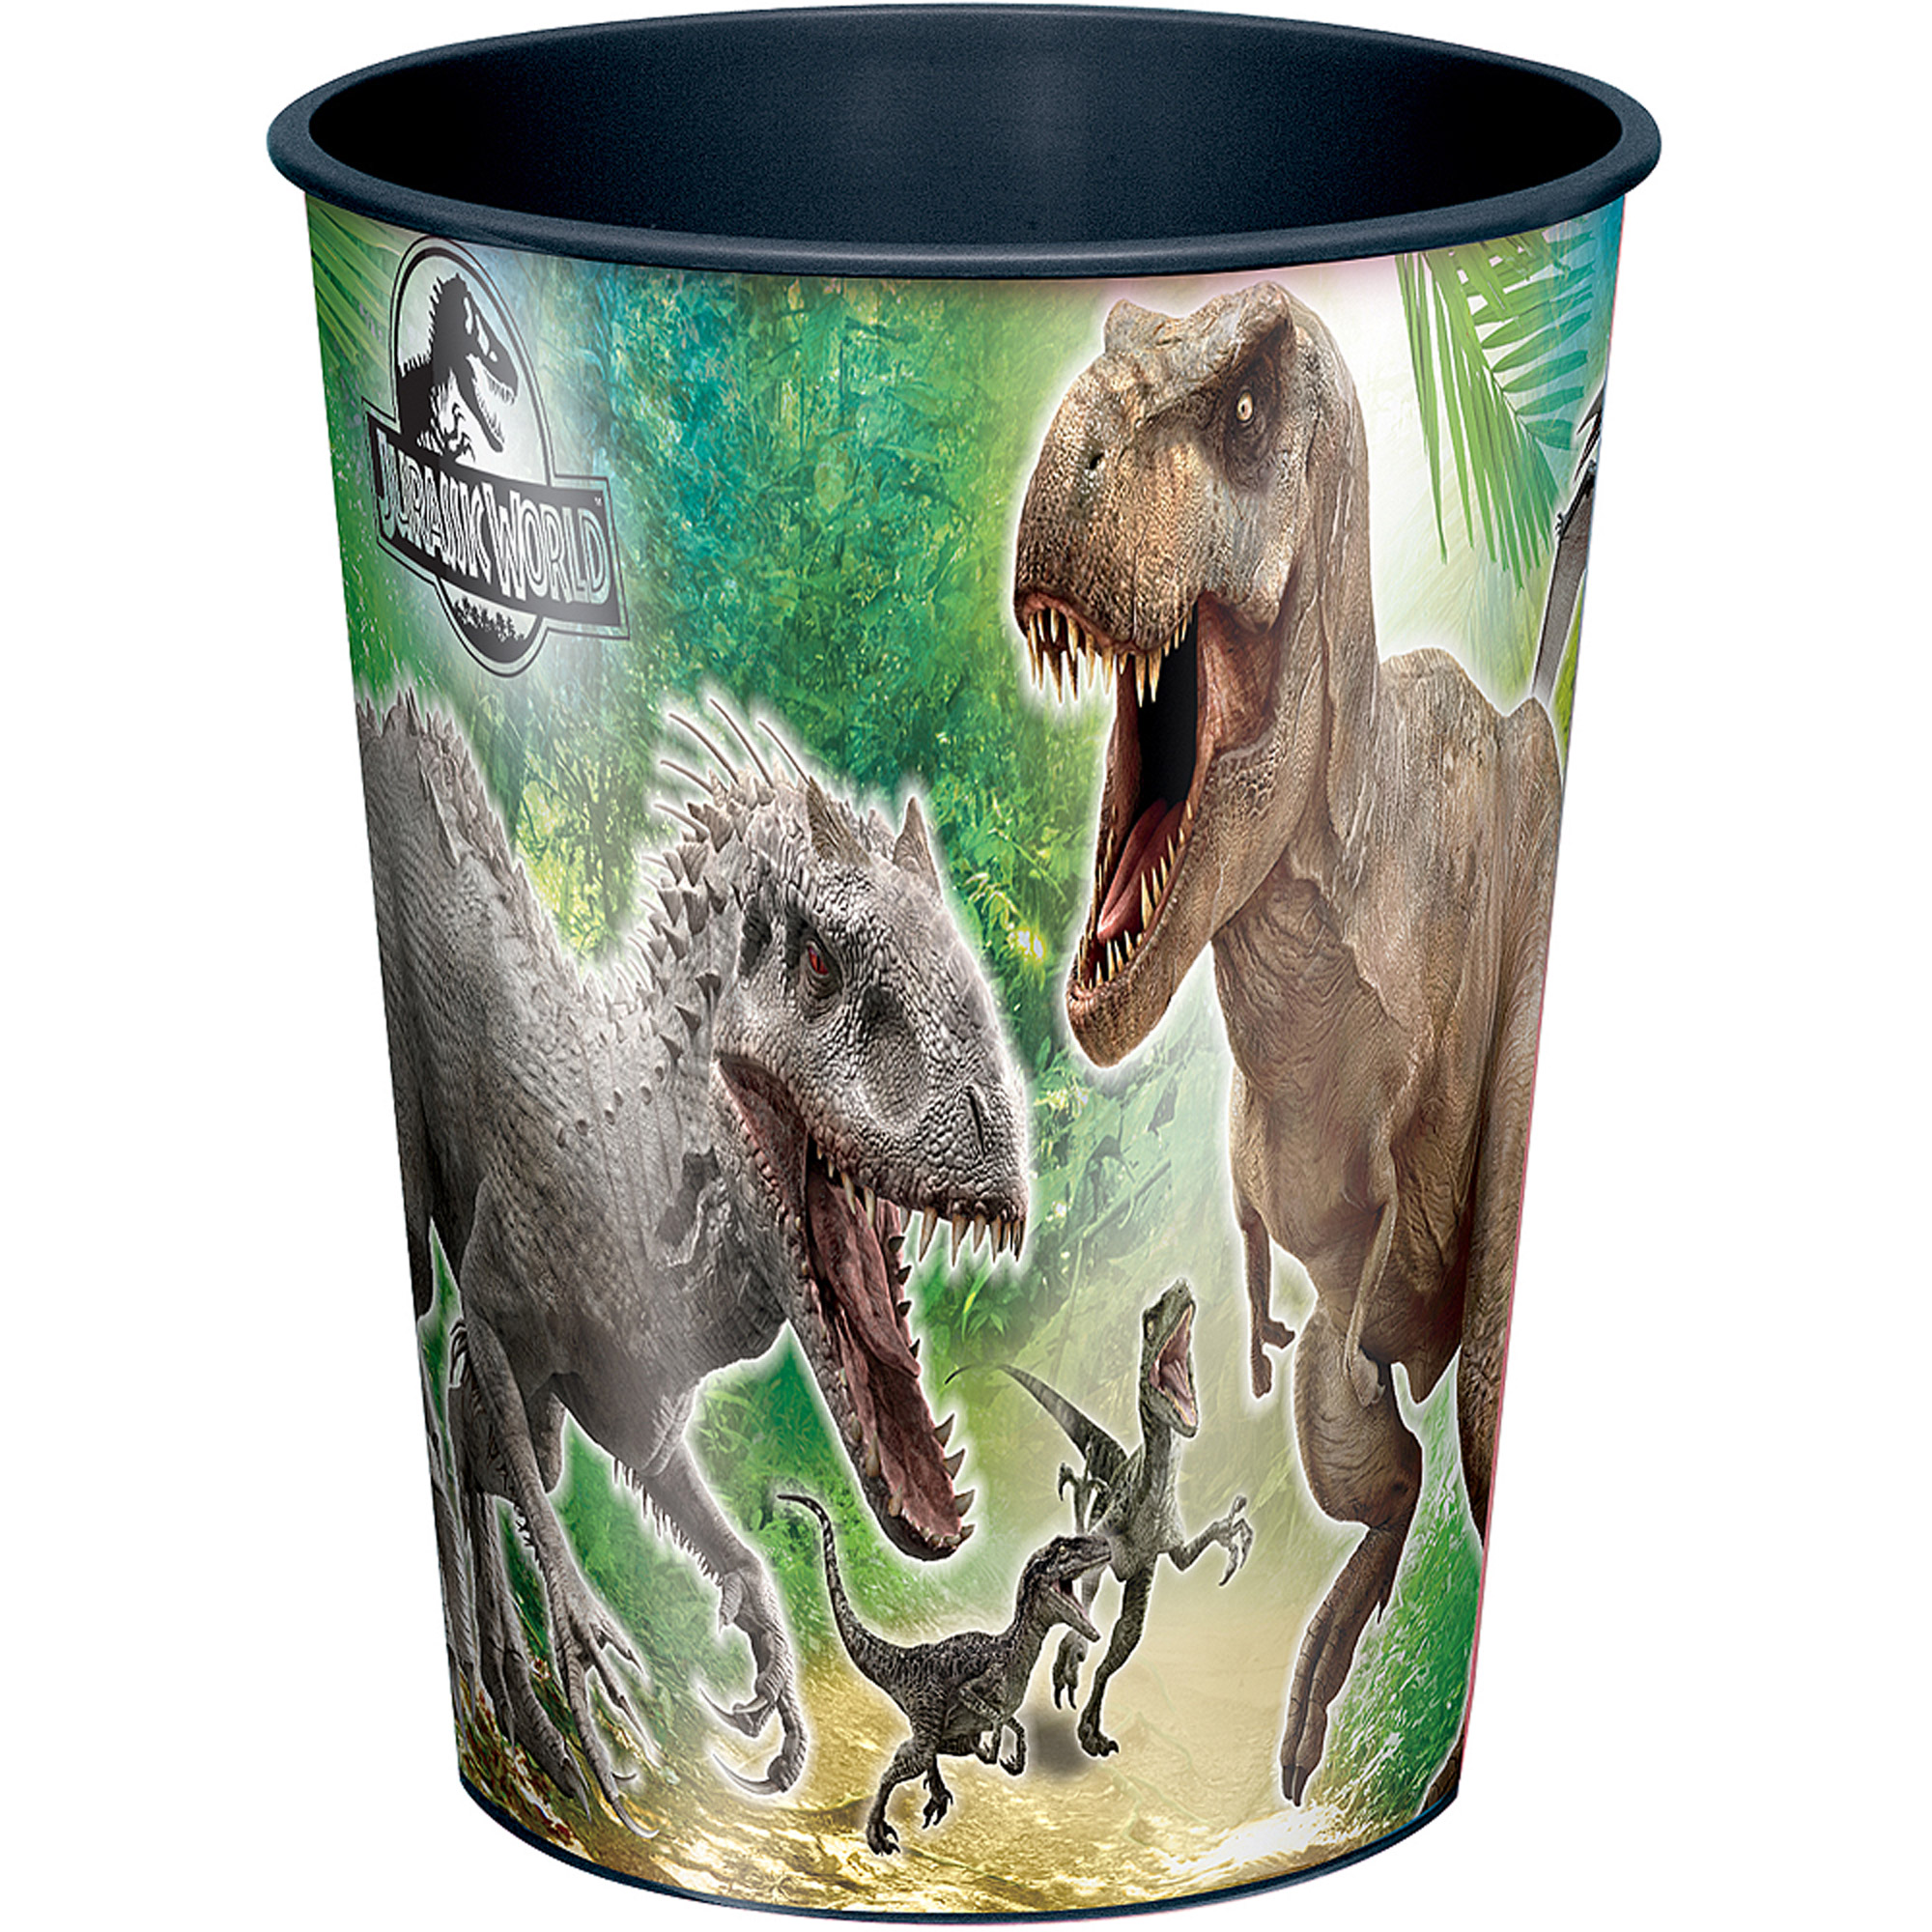 16oz Jurassic World Plastic Stadium Cup, 1ct